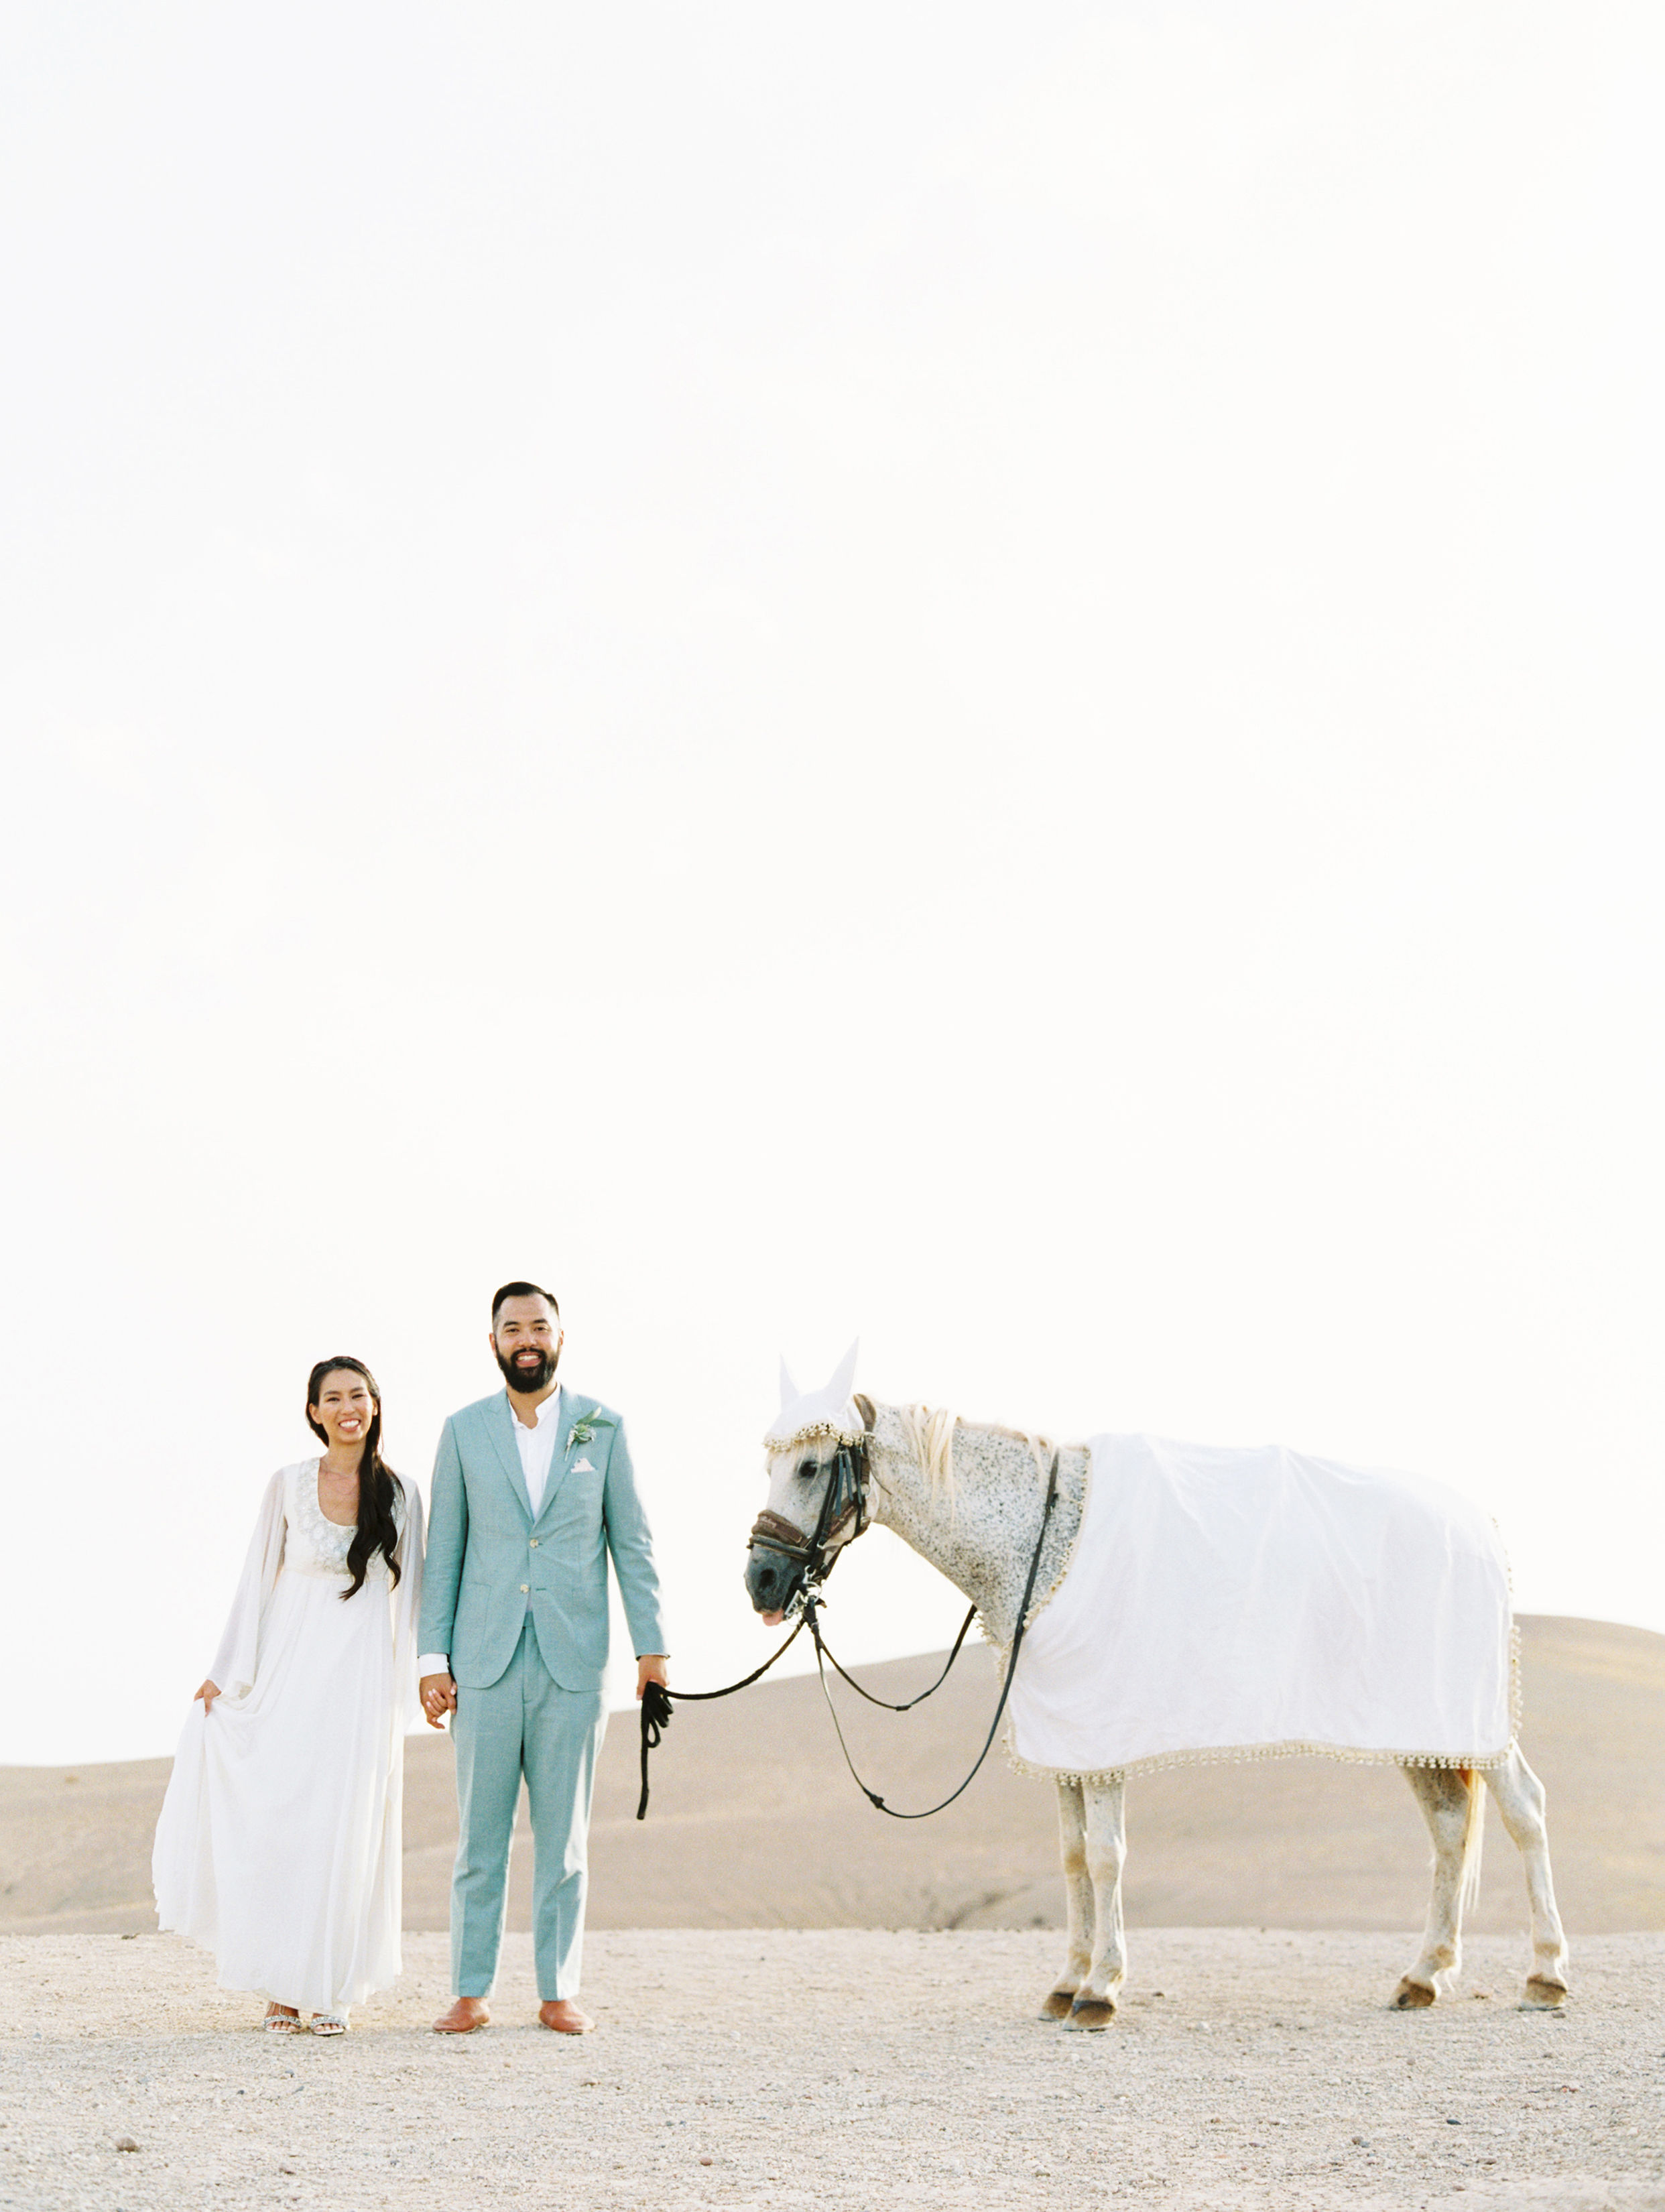 bride and groom stand with horse draped in white linens in the desert